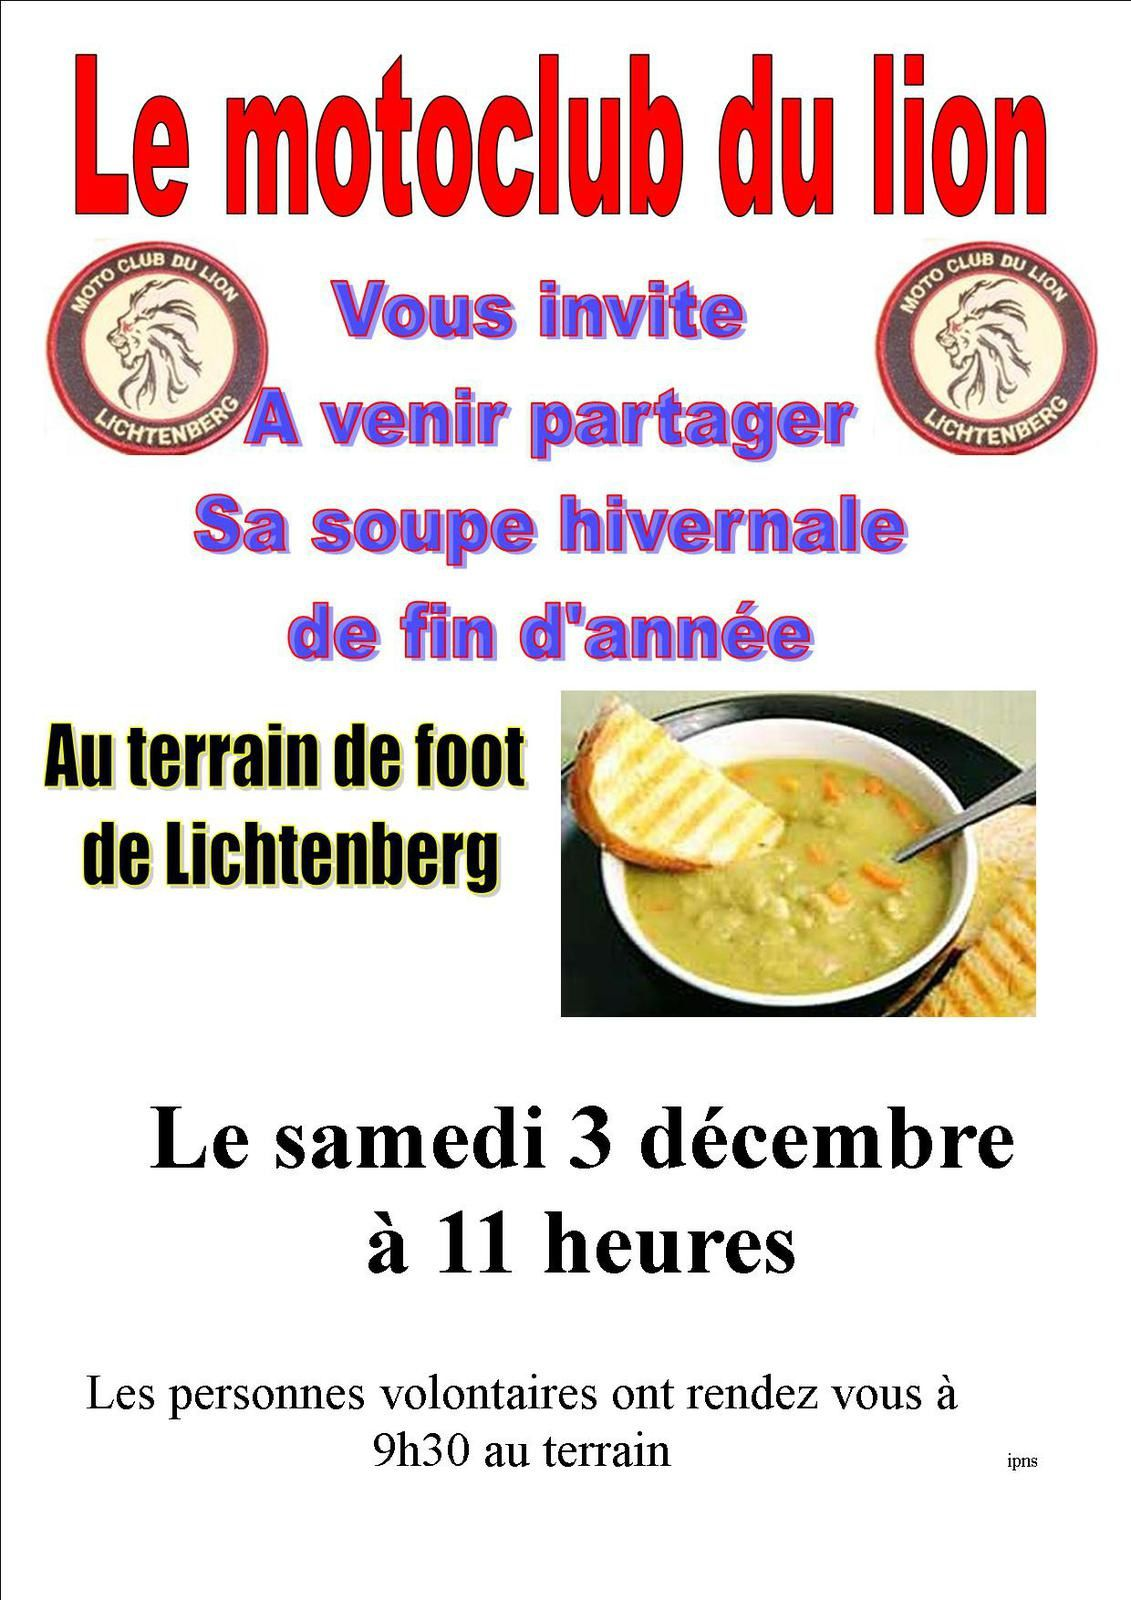 Invitation du moto club de Lichtenberg